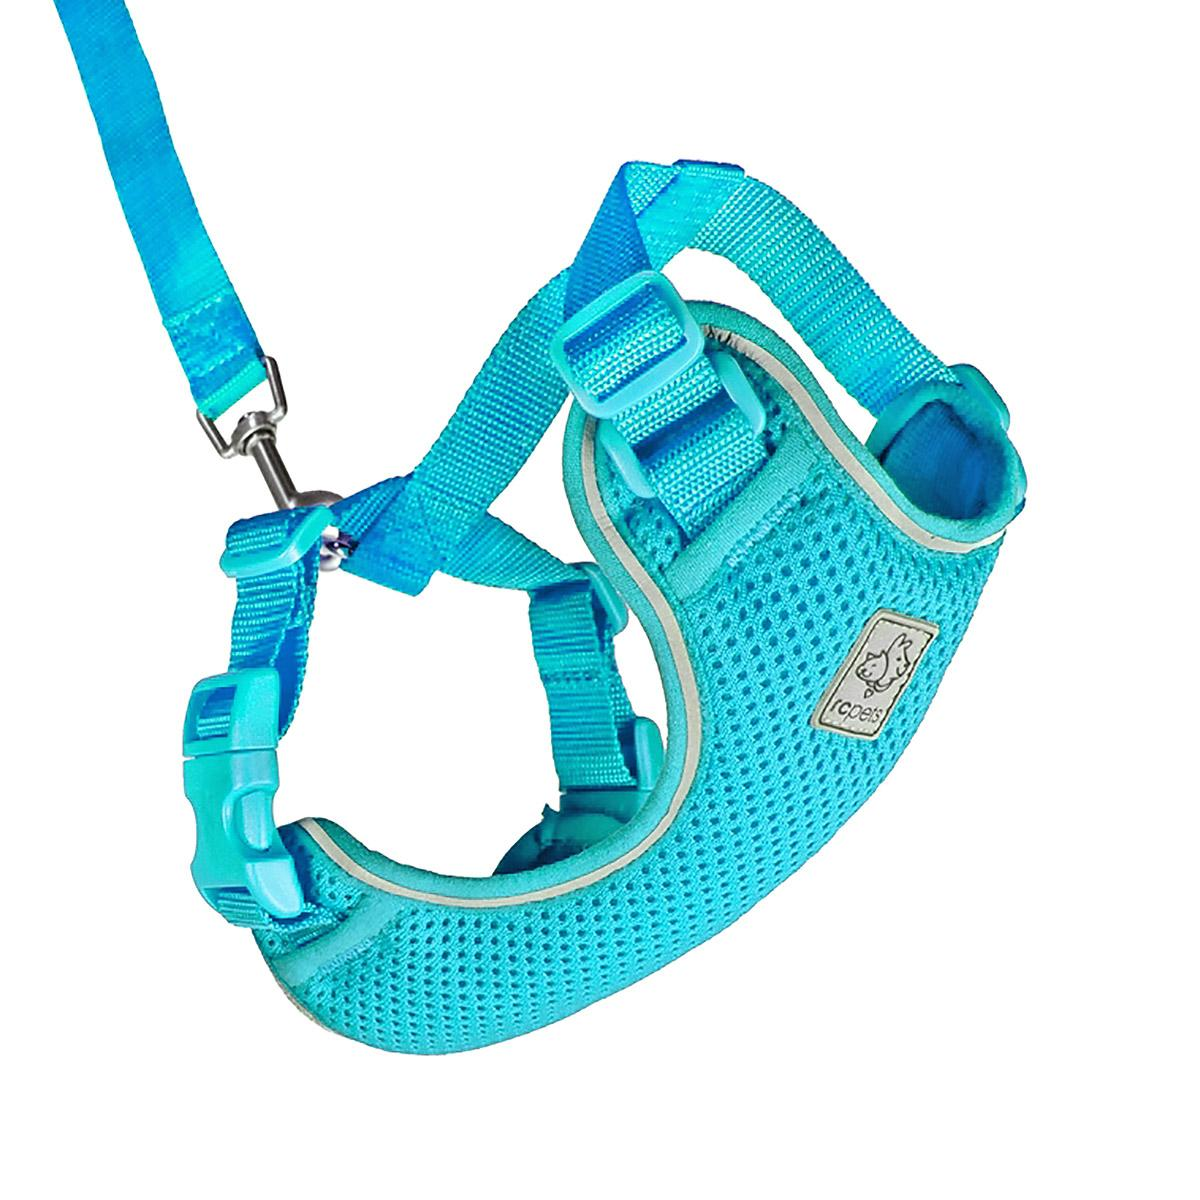 Adventure Kitty Cat Harness with Leash by RC Pet - Teal